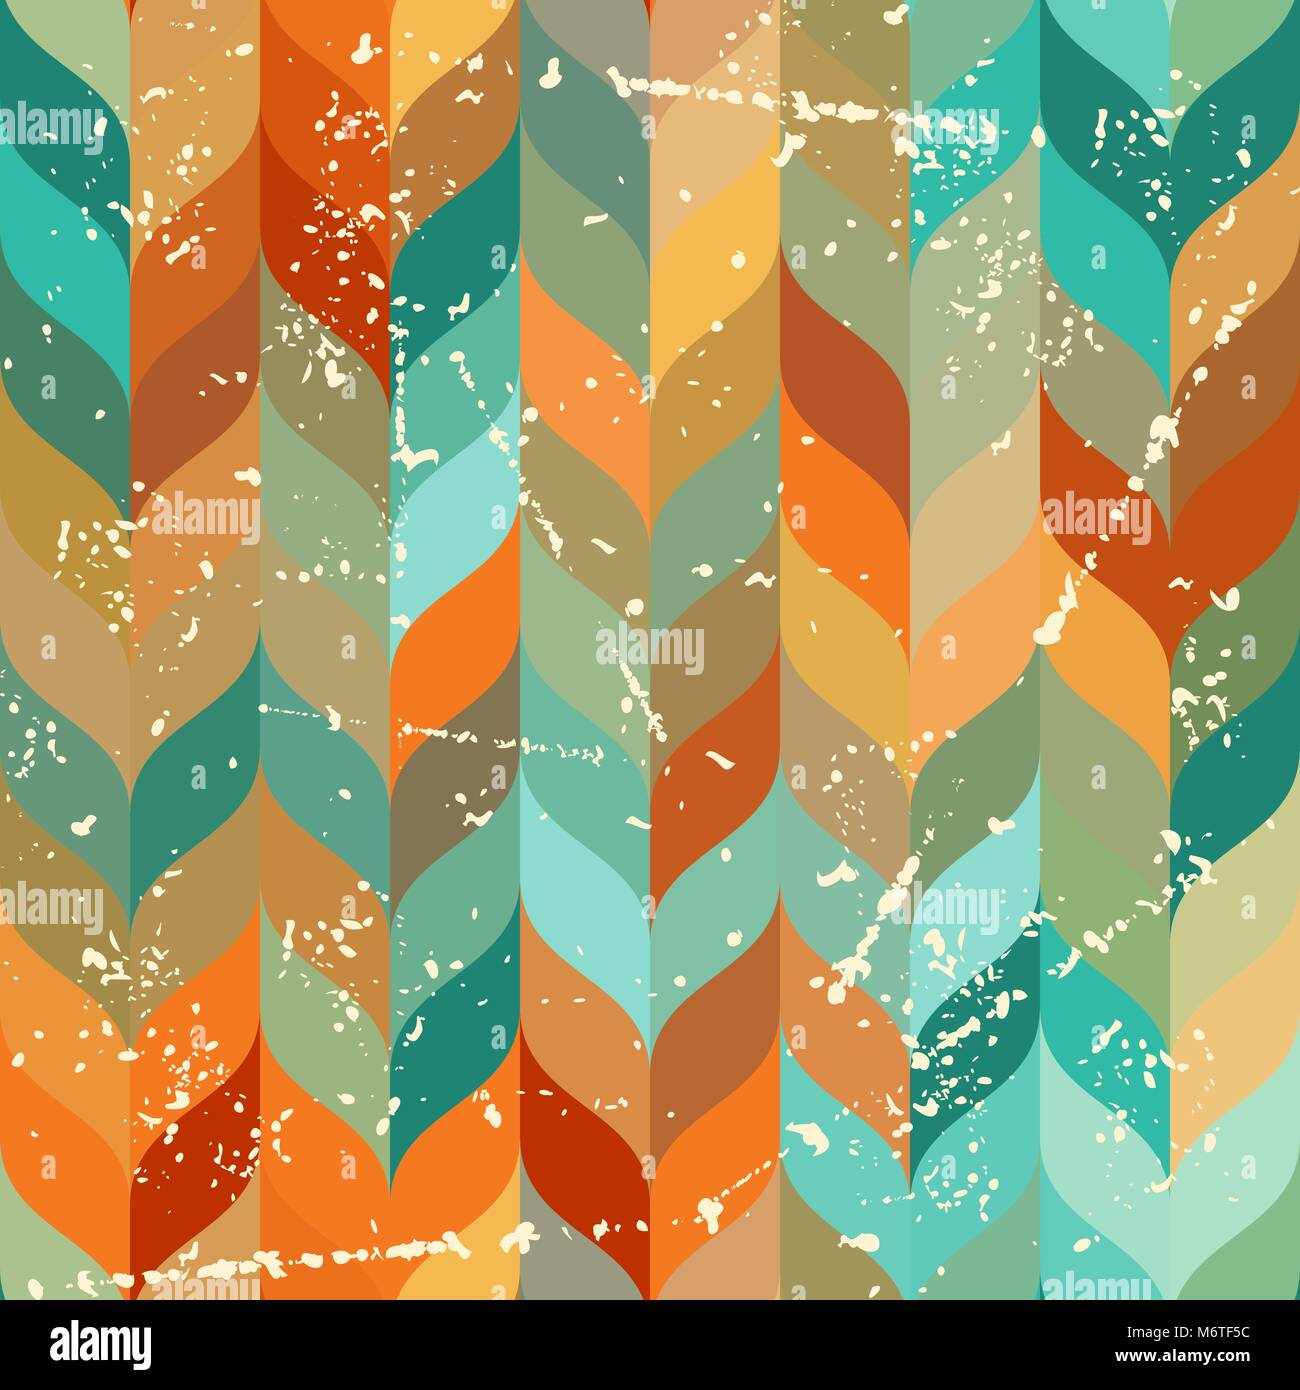 Seamless grunge pattern in retro style - Stock Vector